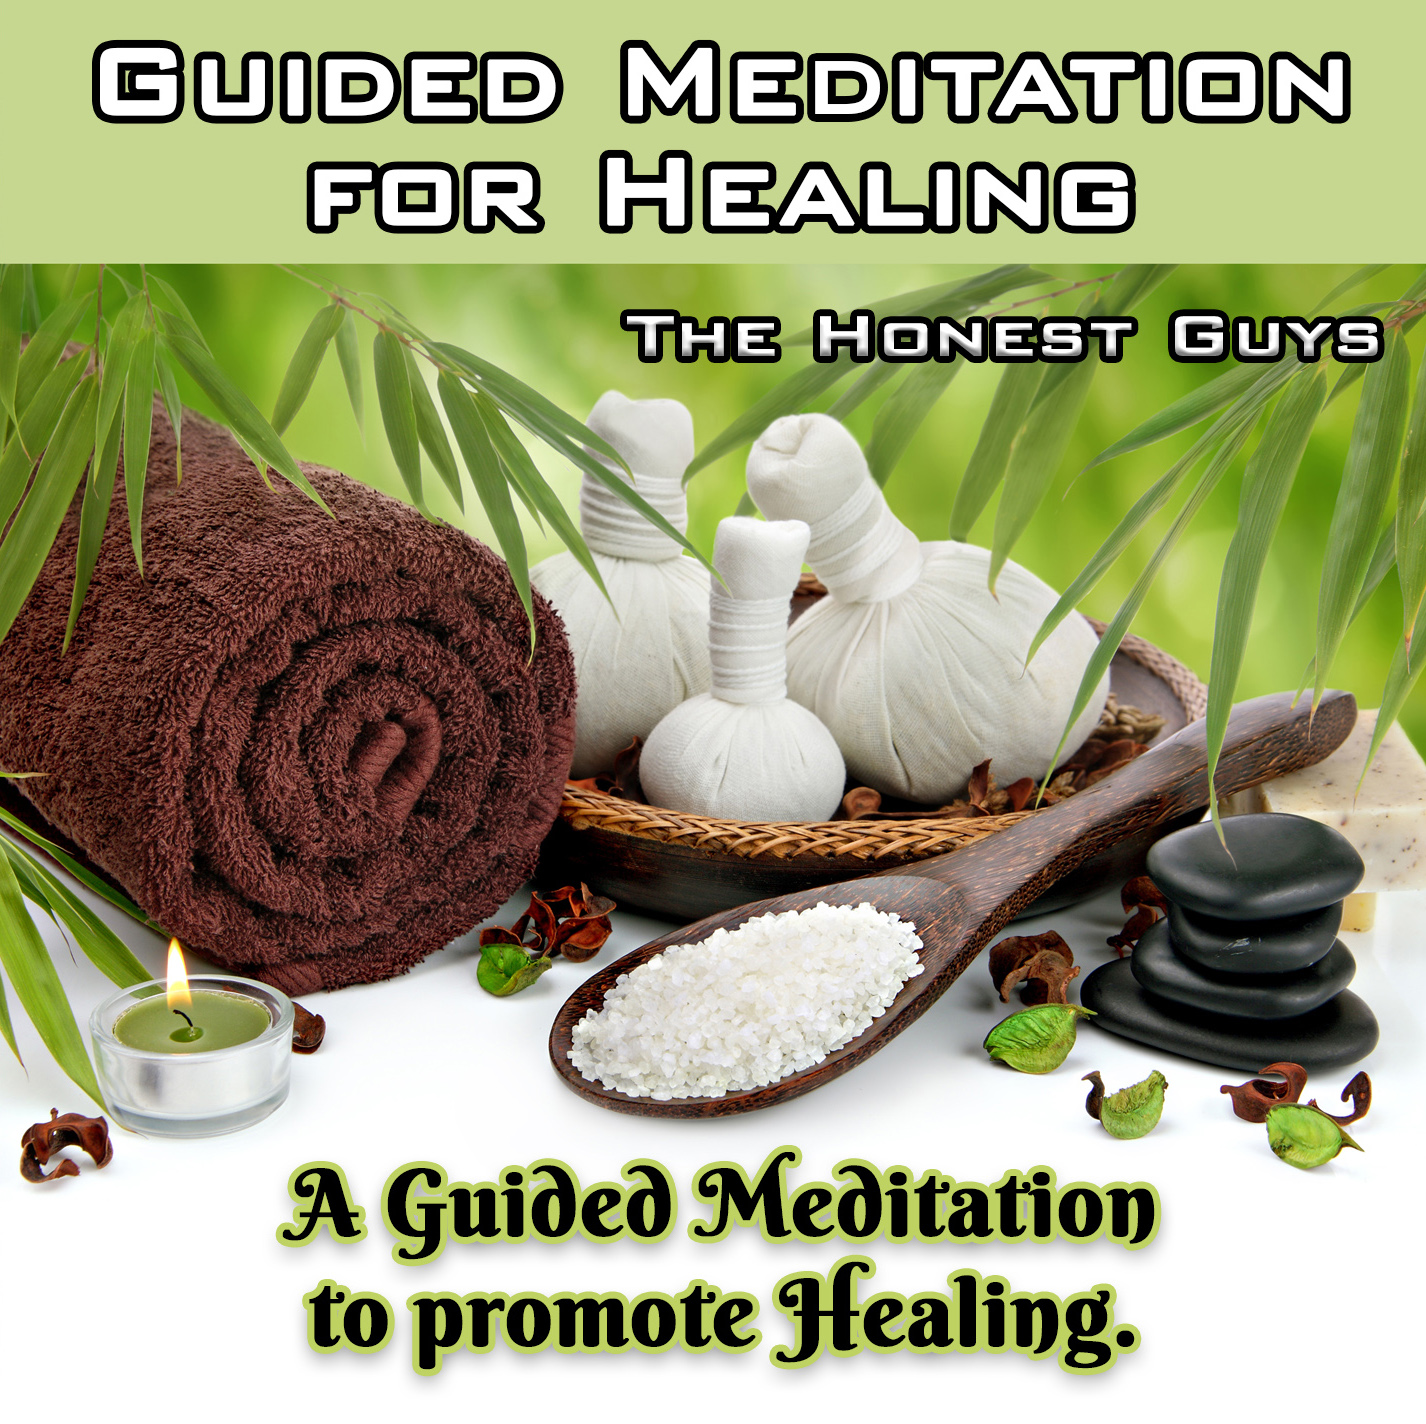 A Guided Meditation for Healing — TheHonestGuys co uk